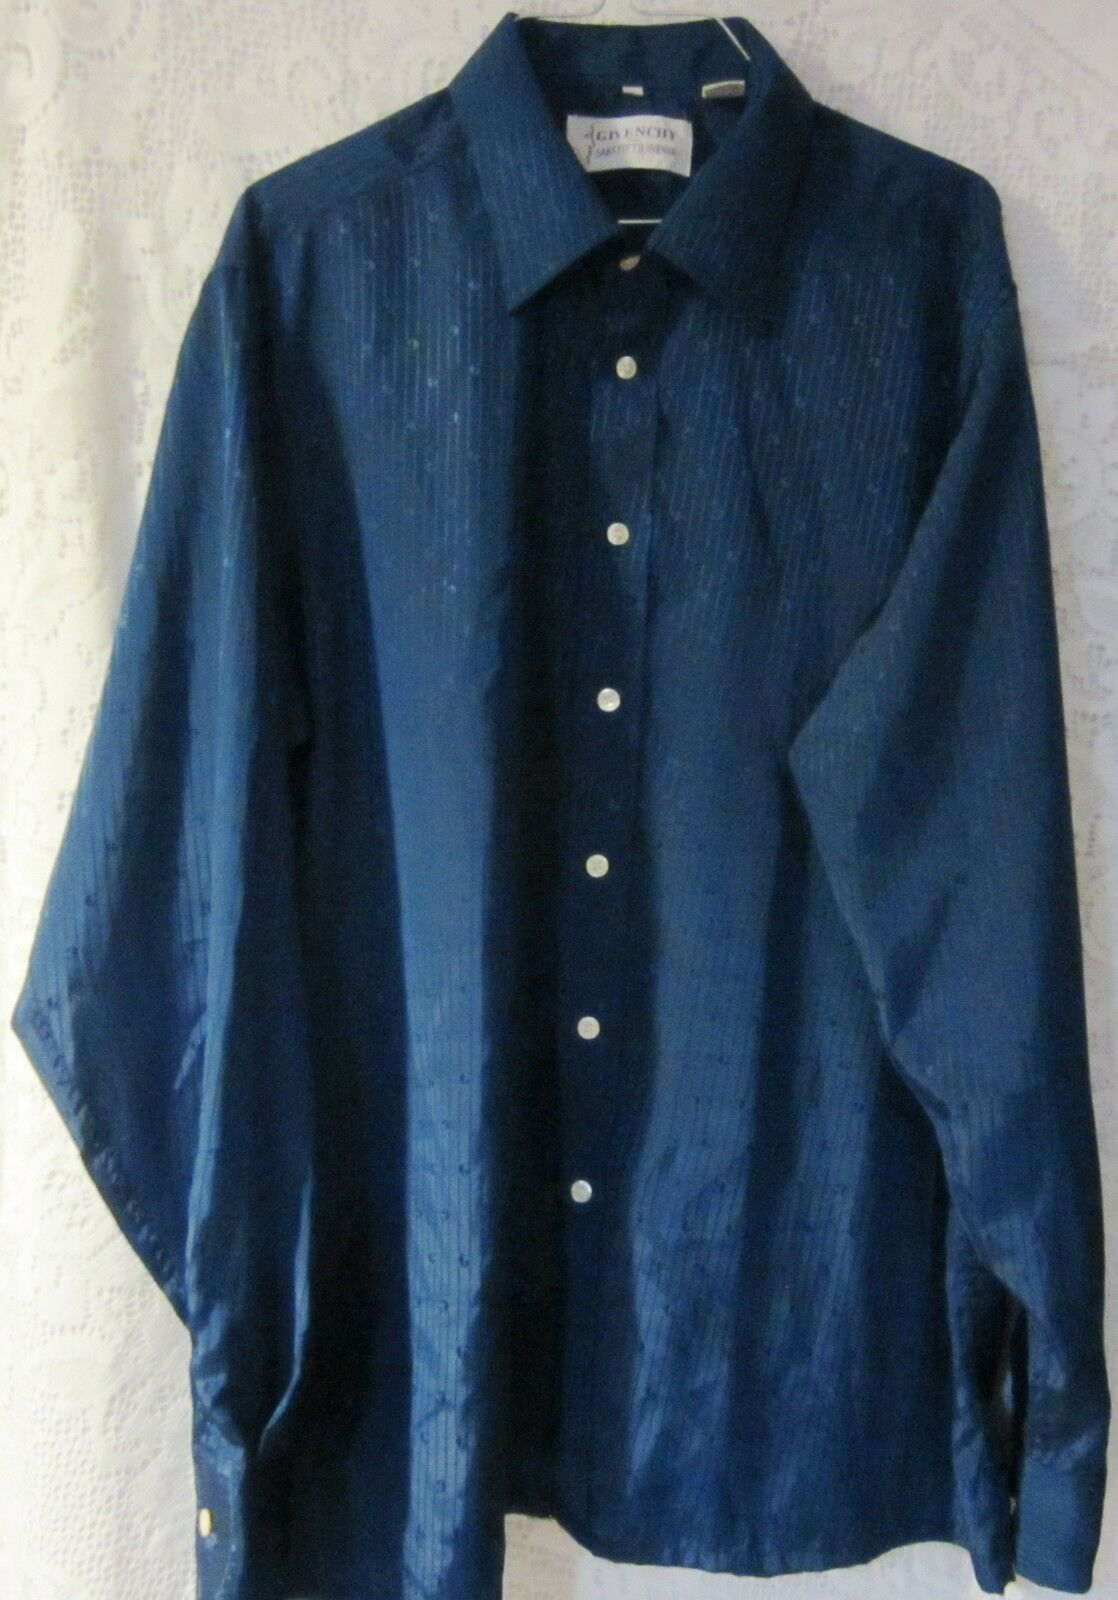 GIVENCHY For Saks Fifth Avenue mens  Button Up  G pattern shirt Größe XL